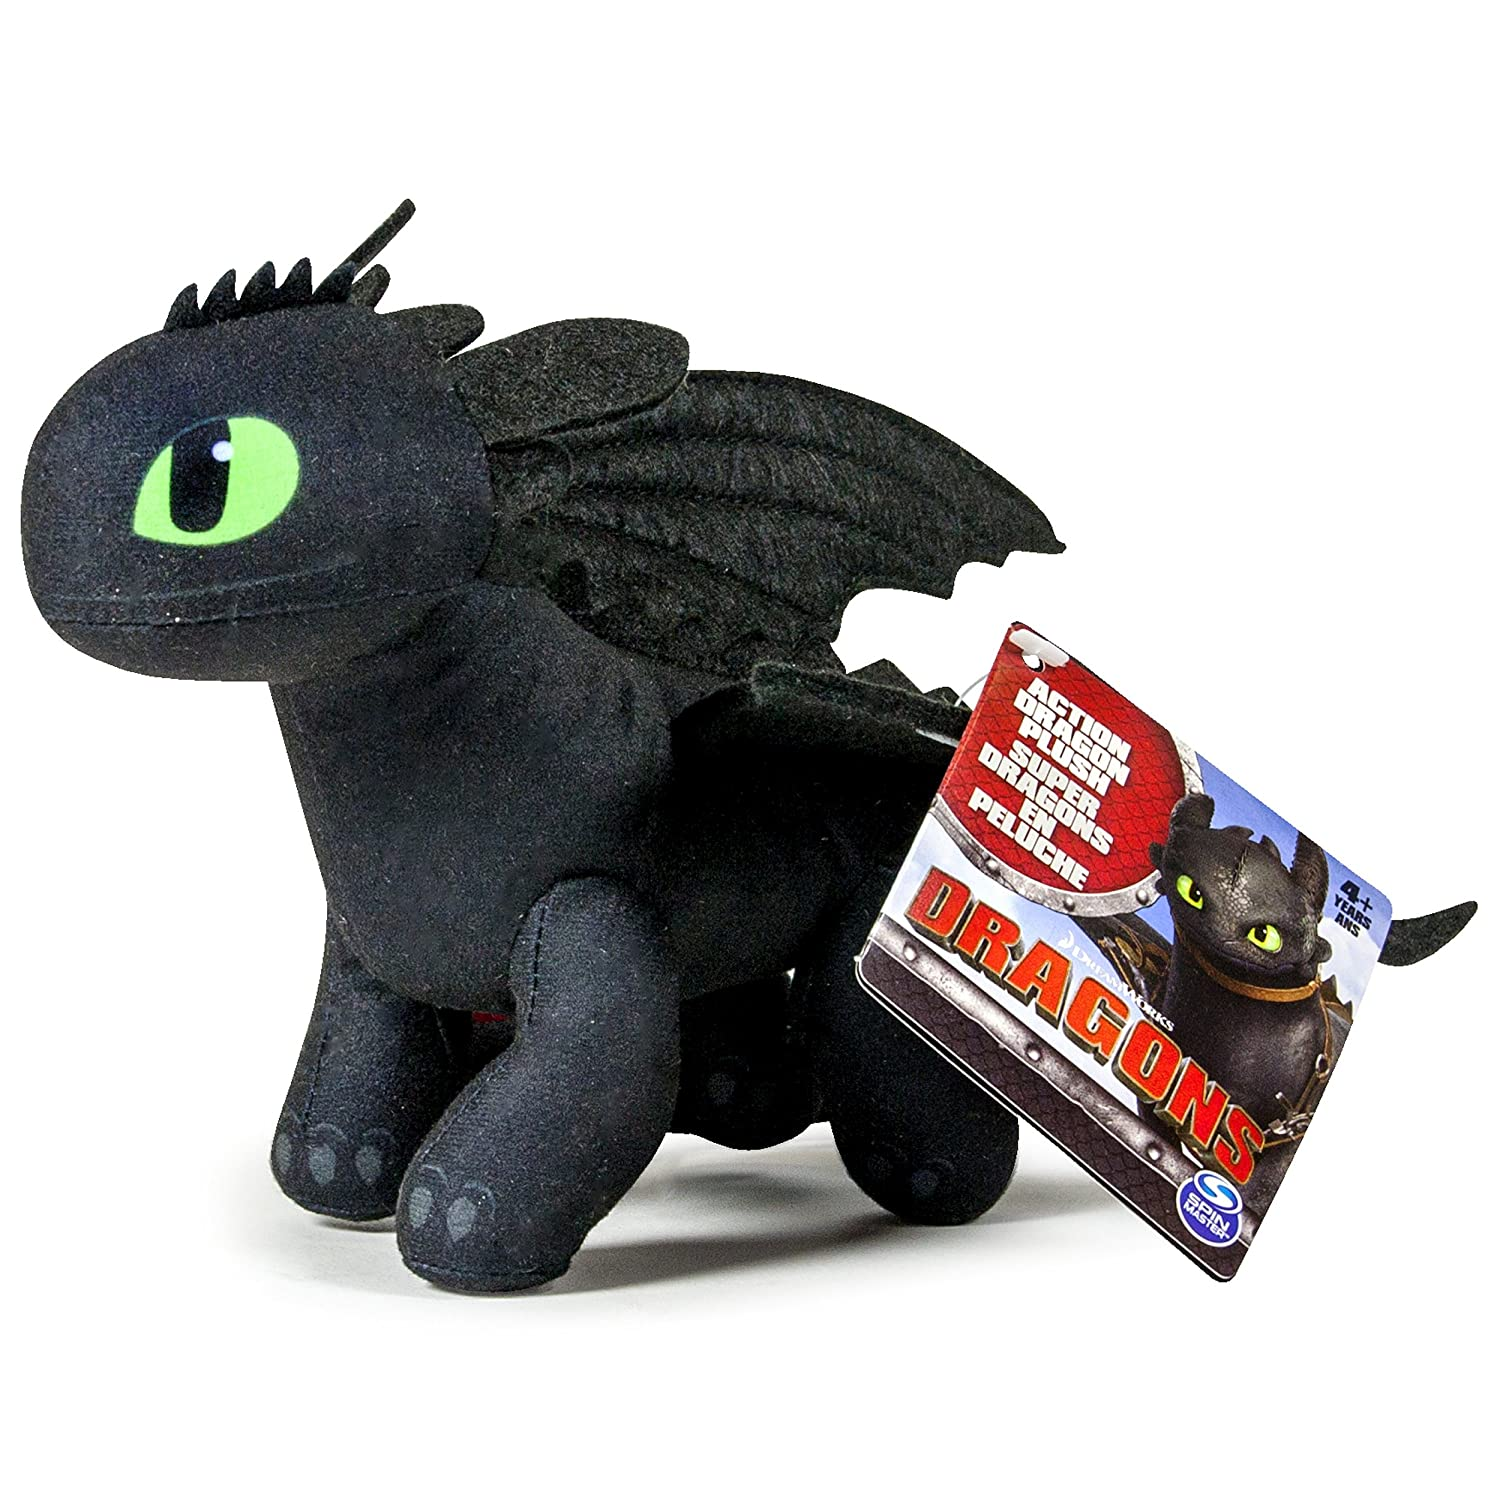 Amazon.com: Dreamworks Dragons Action Dragon 8